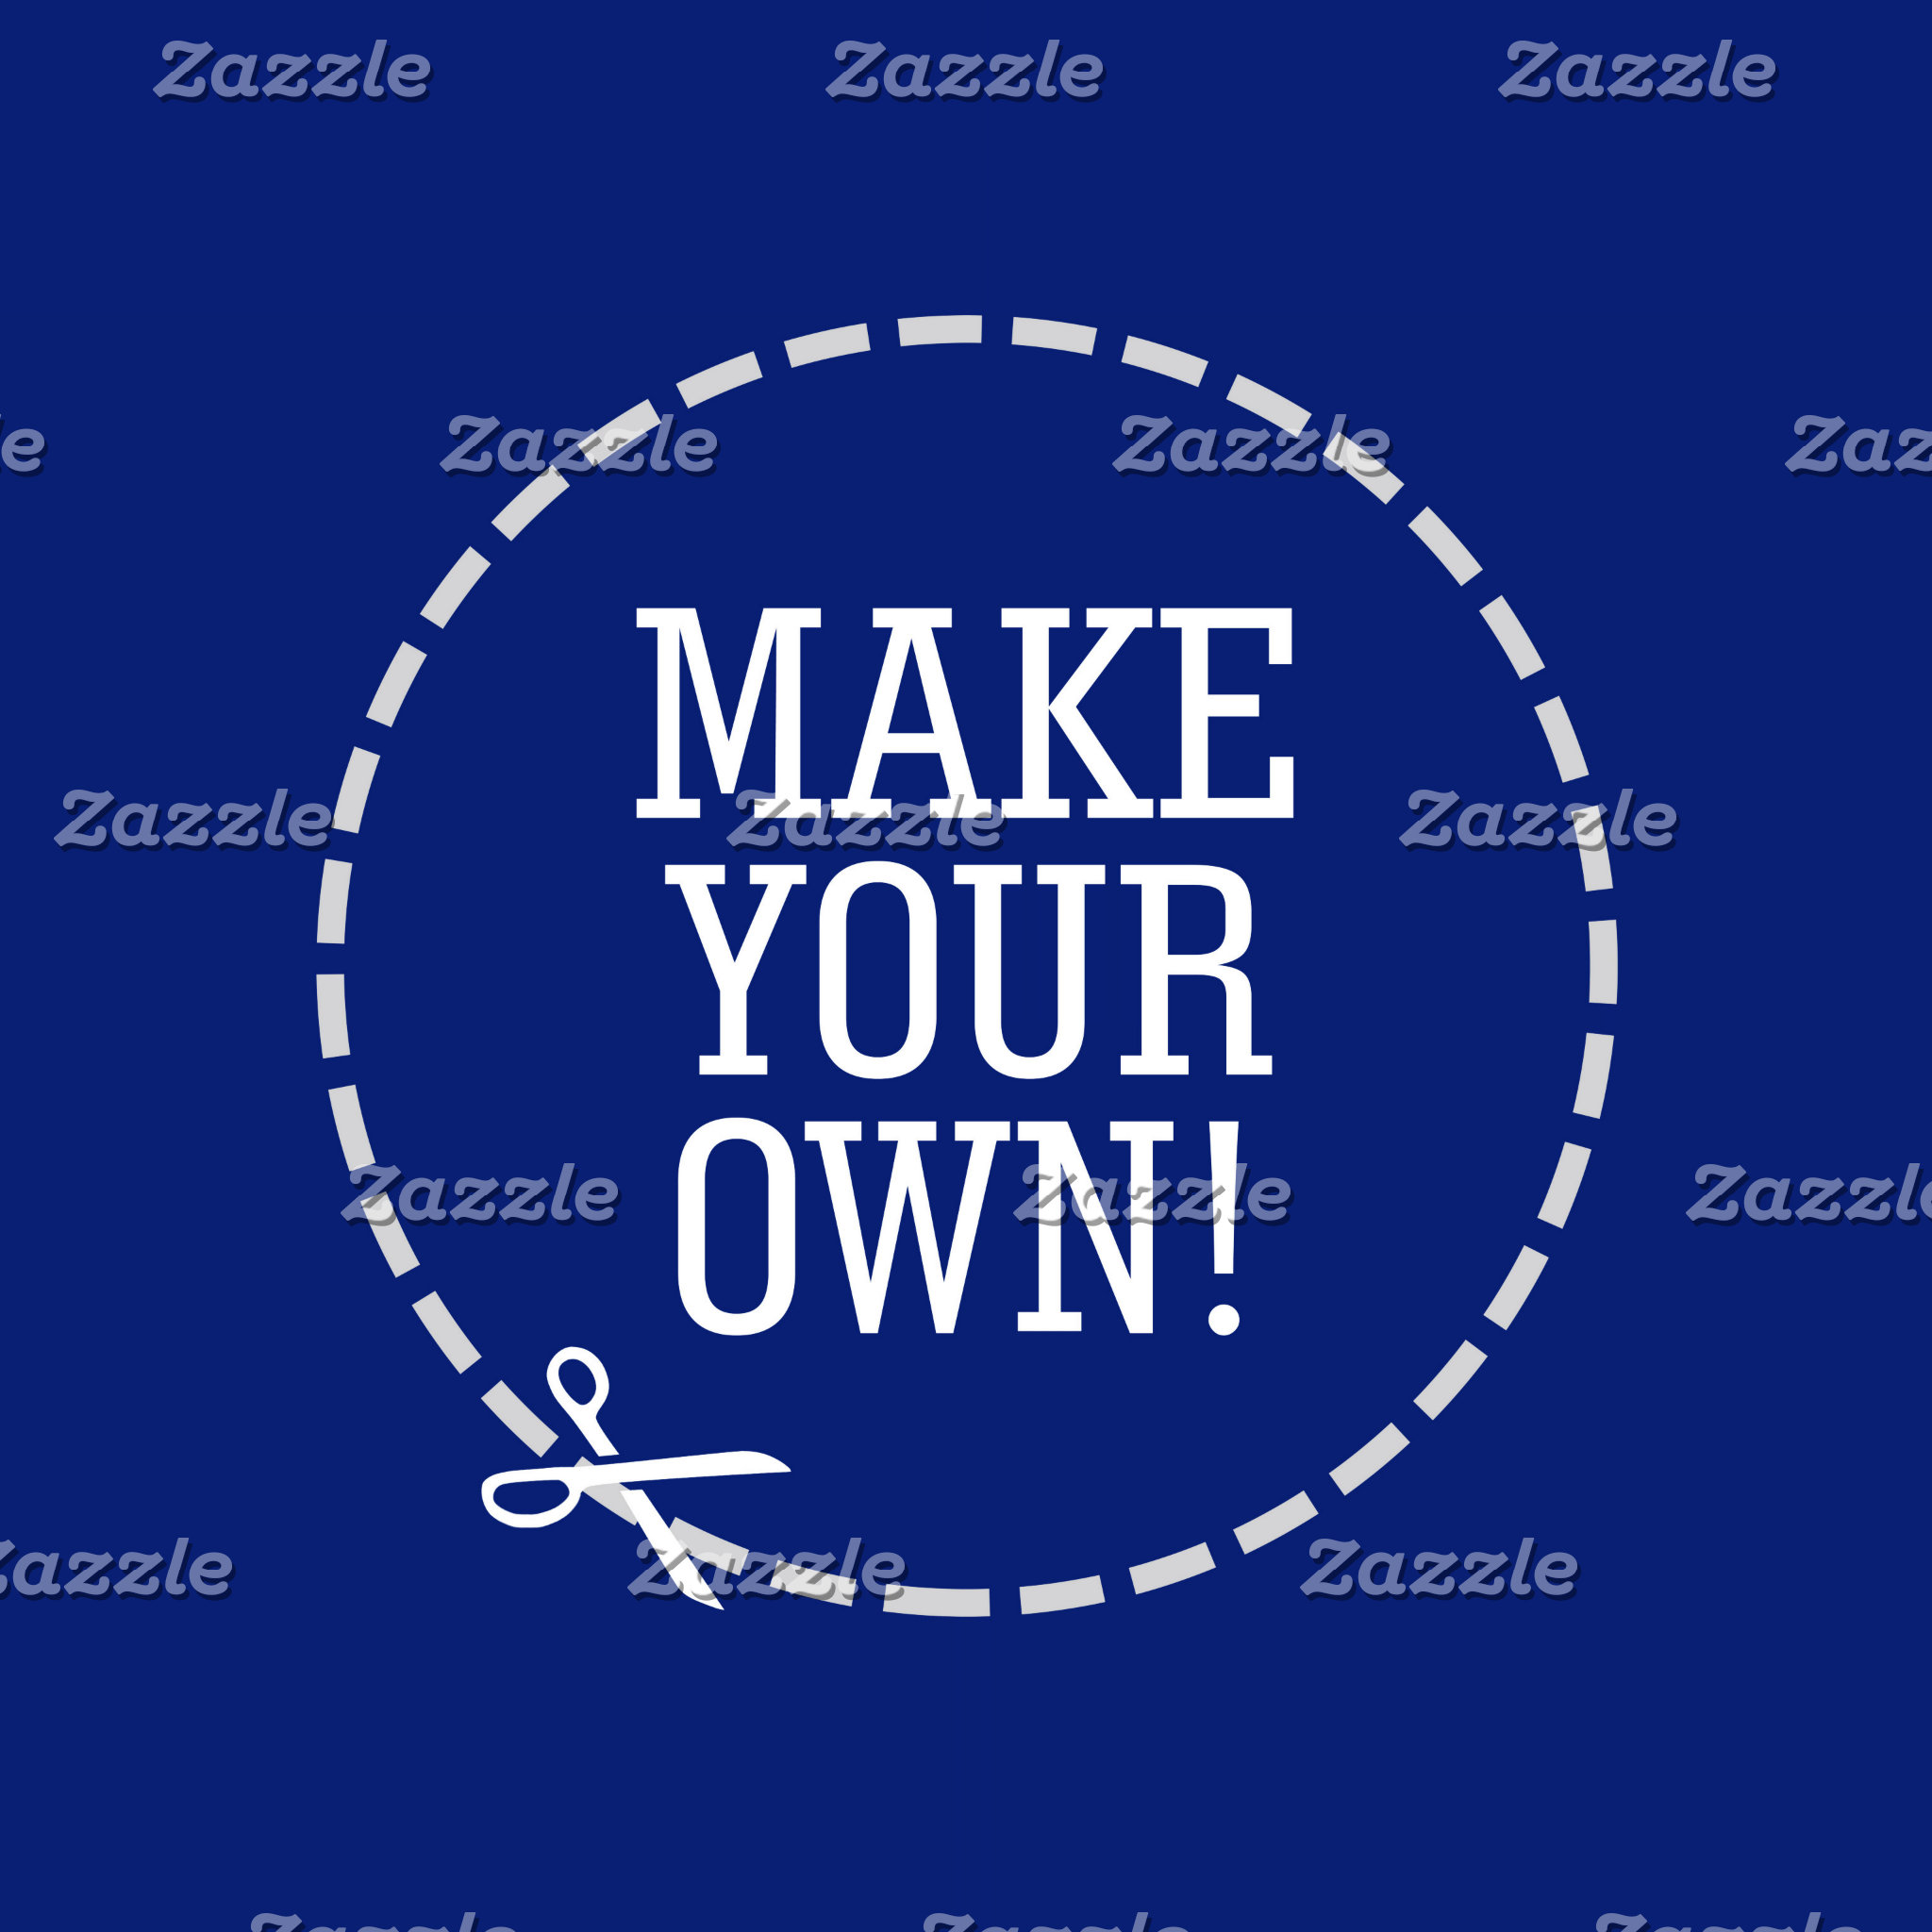 Make Your Own!